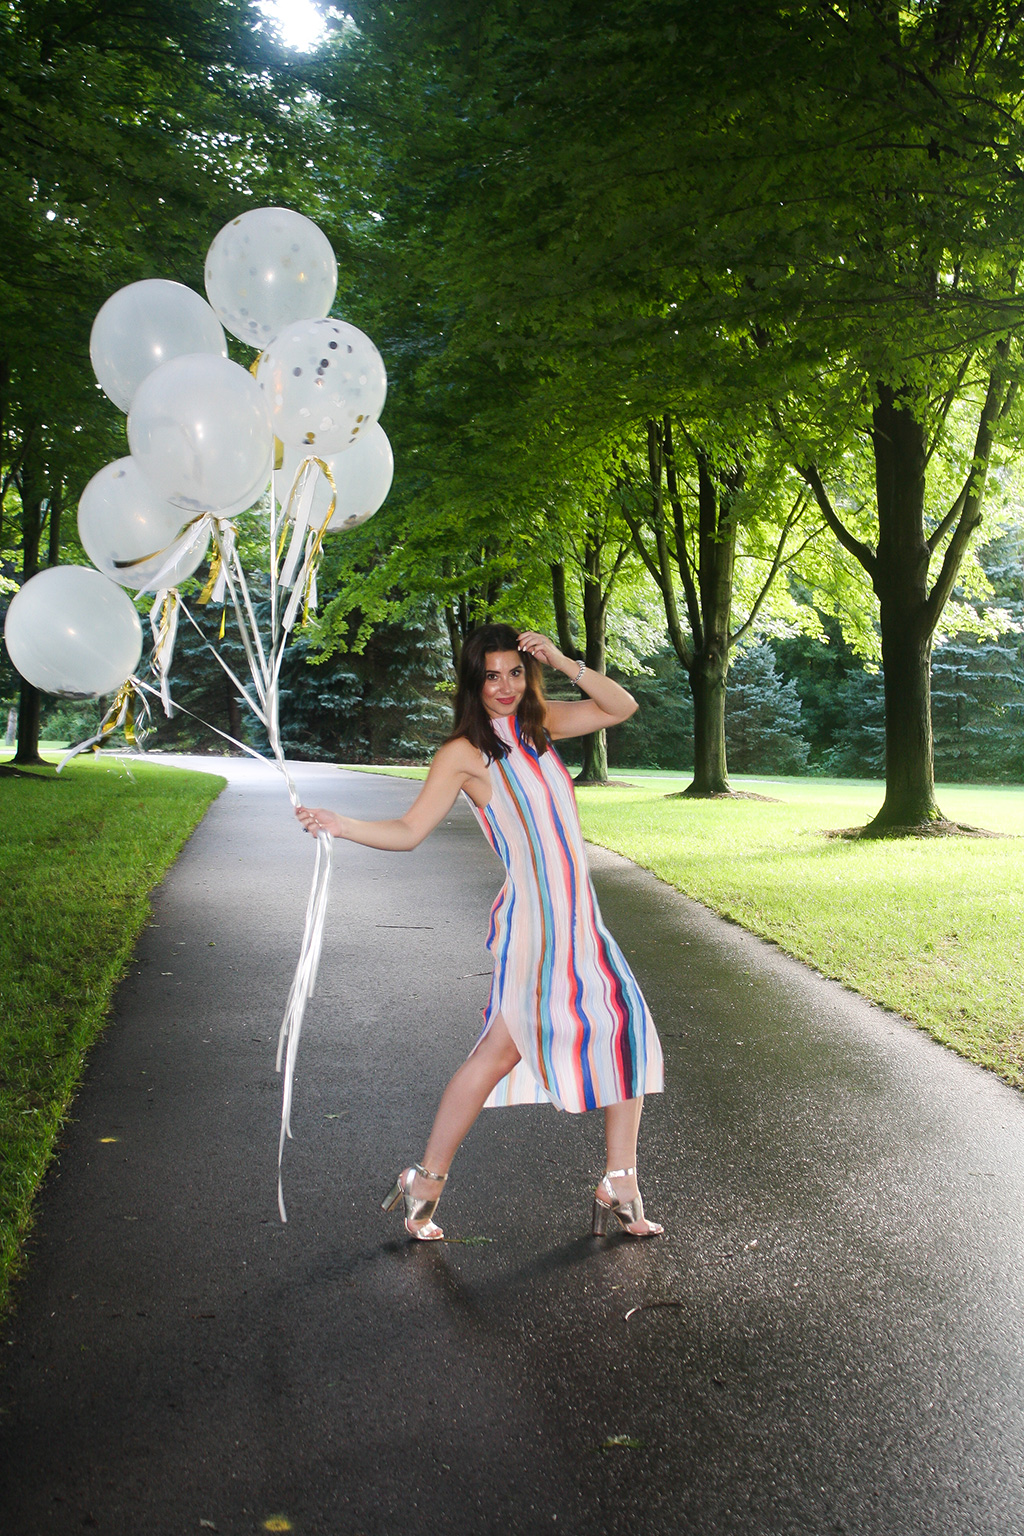 Fiesta Ready | H&M Multi-Color Striped Dress, Forever 21 Gold Chunky Heels, Paperless Post Confetti Balloons